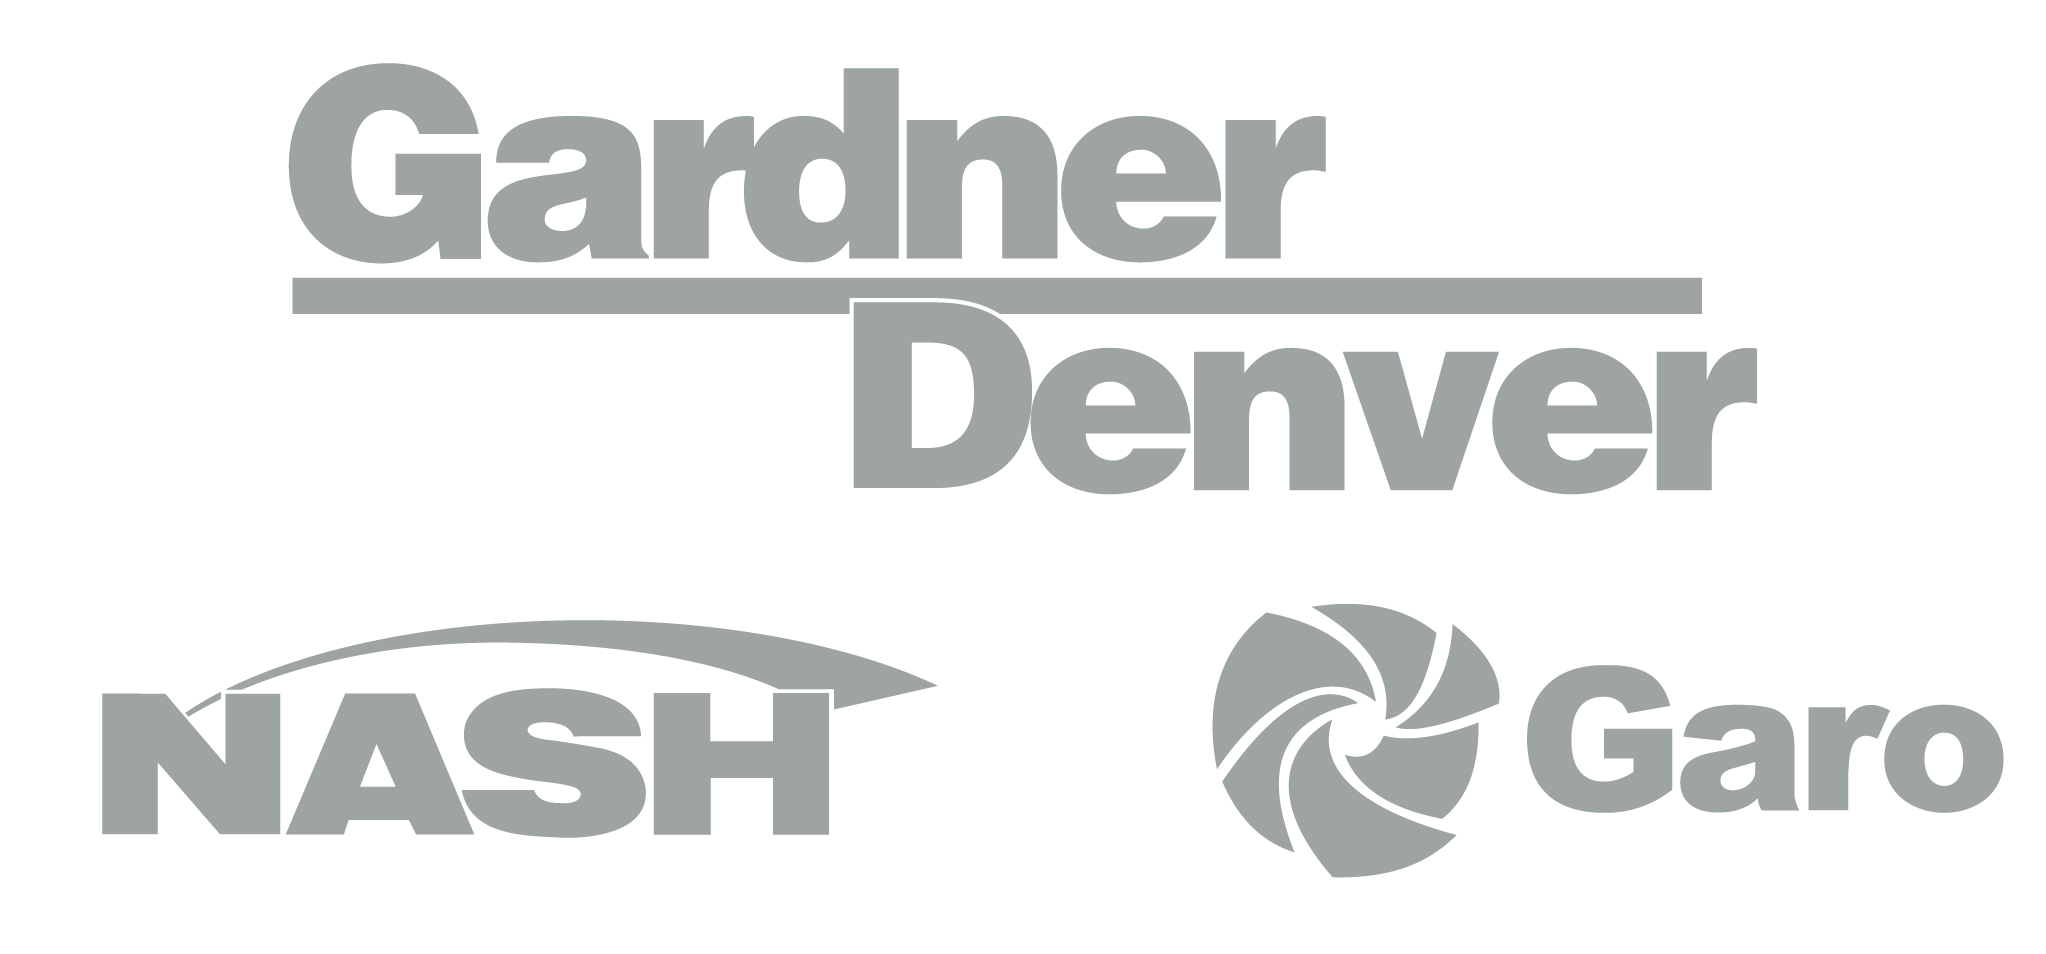 Gardner Denver, Nash, Garo logos in Light Gray